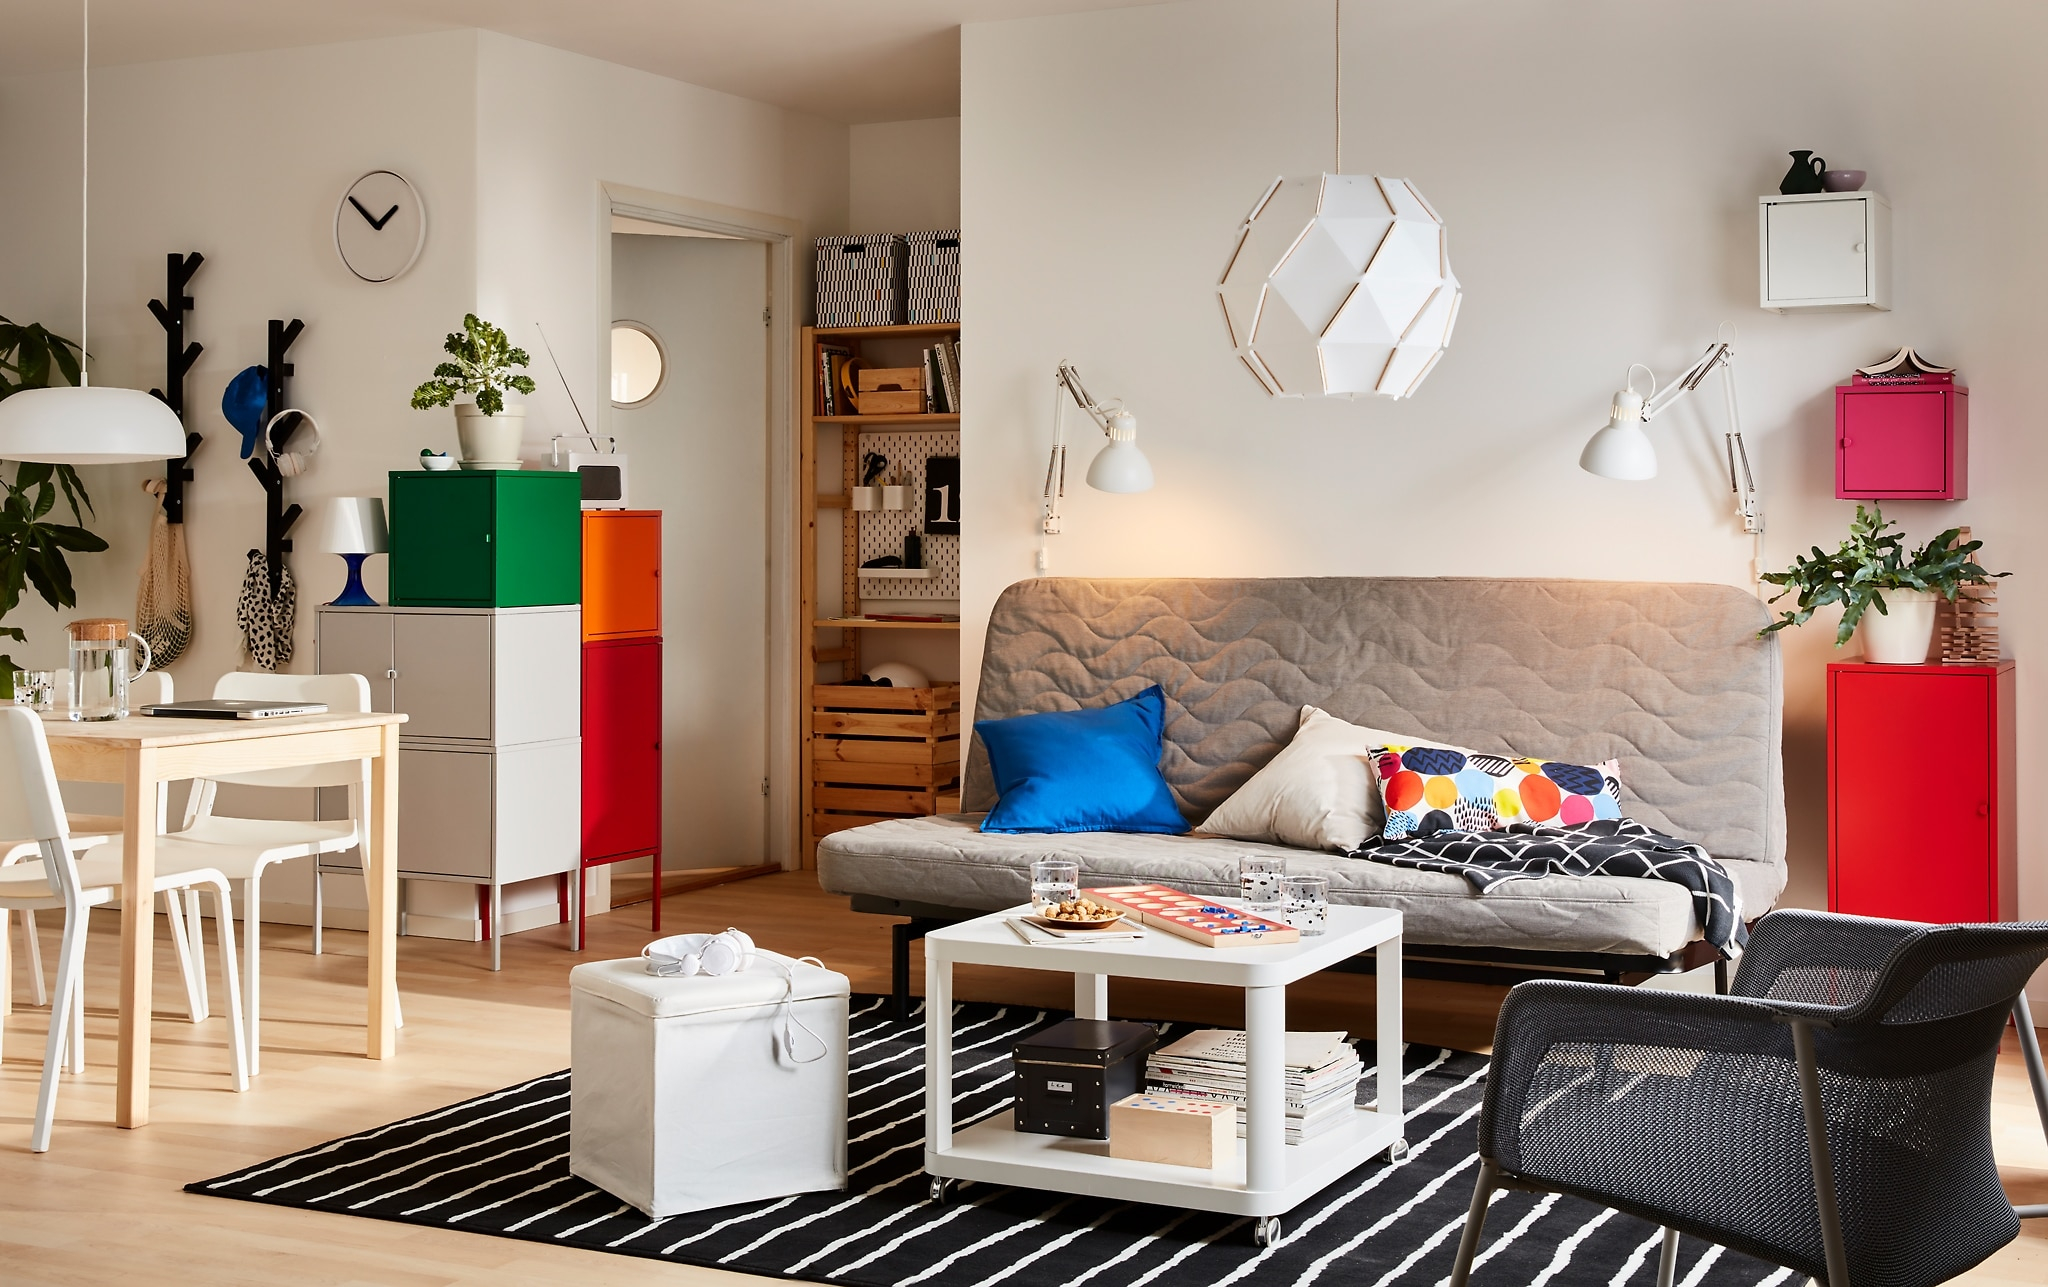 Simphome.com living room furniture ideas ikea within 15 some of the coolest ideas how to upgrade living room set ups for small rooms